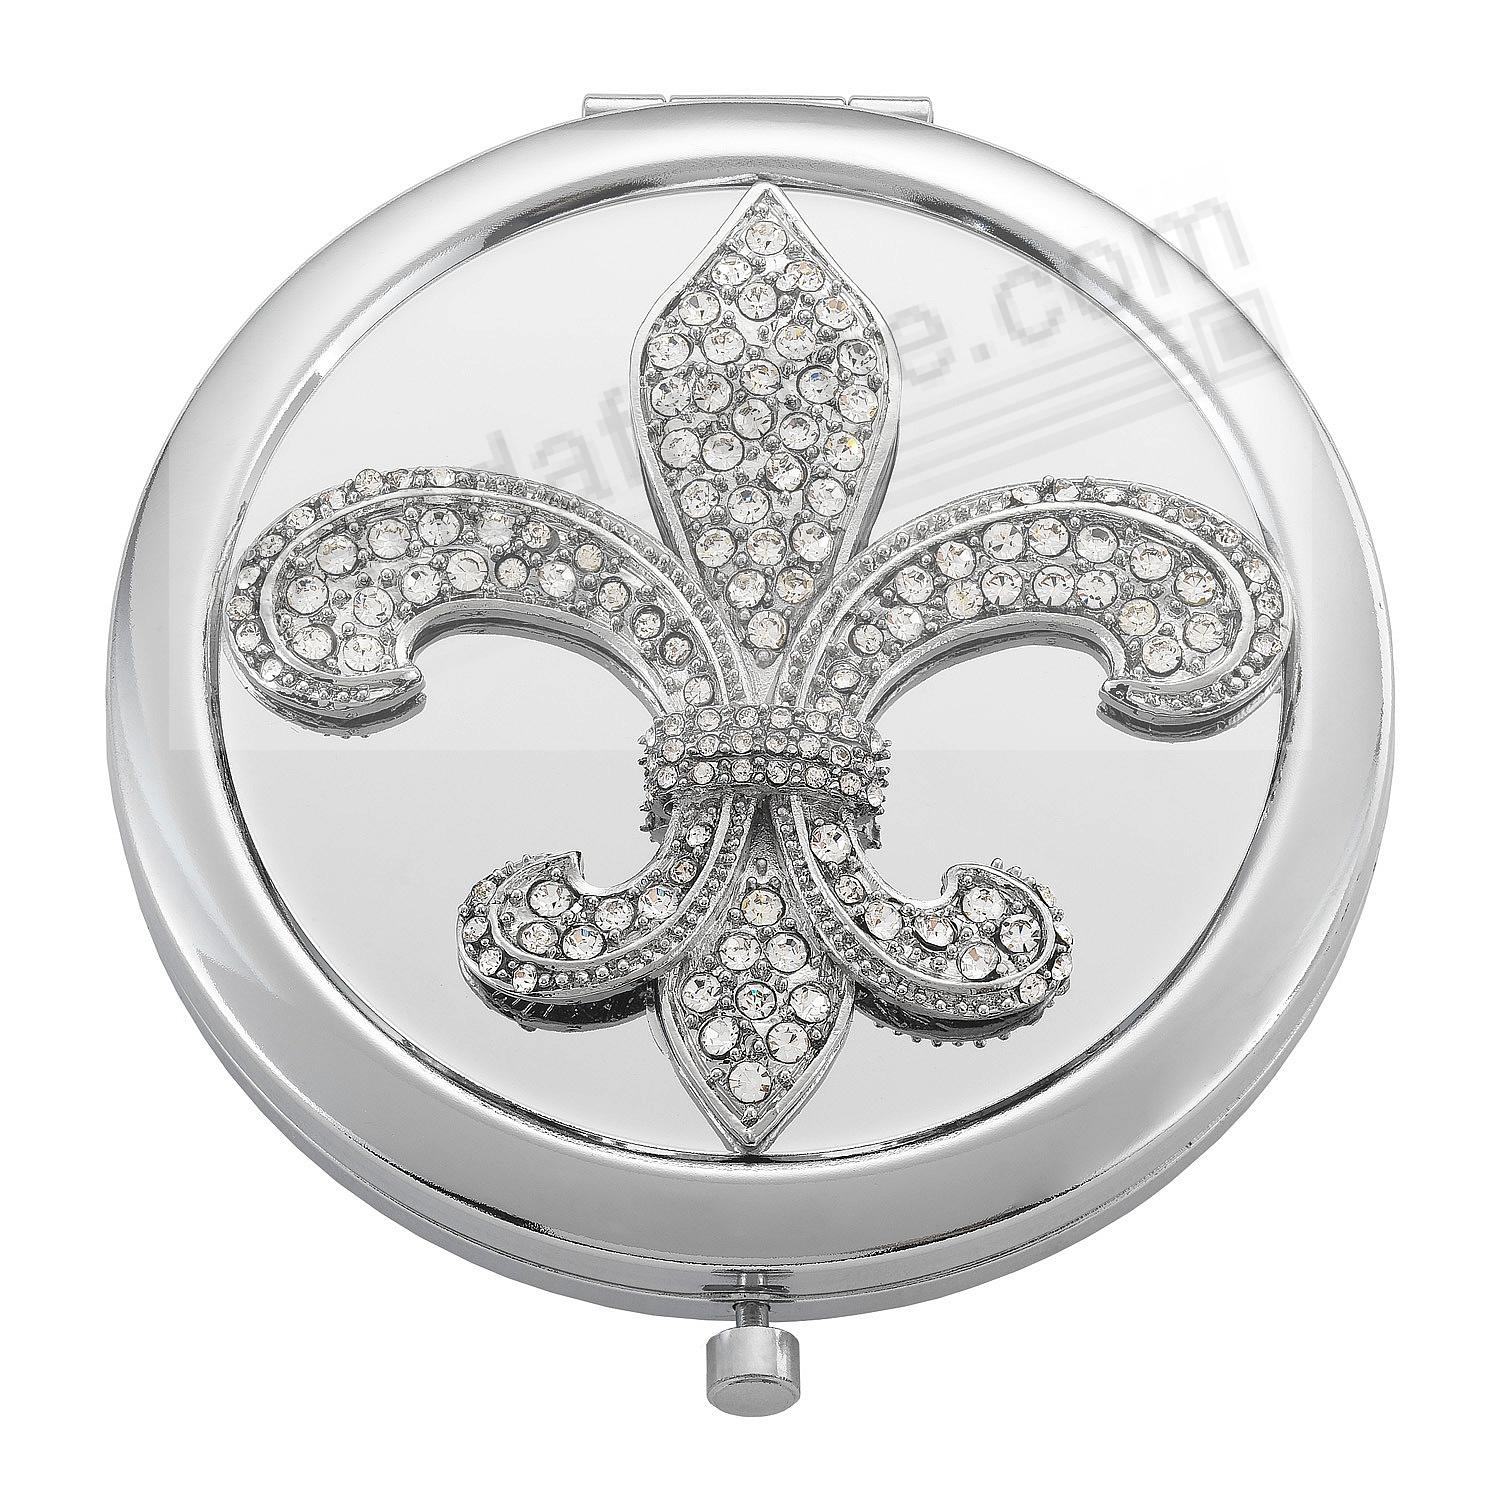 FLEUR DE LIS SILVER/Crystal PURSE MIRROR by Olivia Riegel®